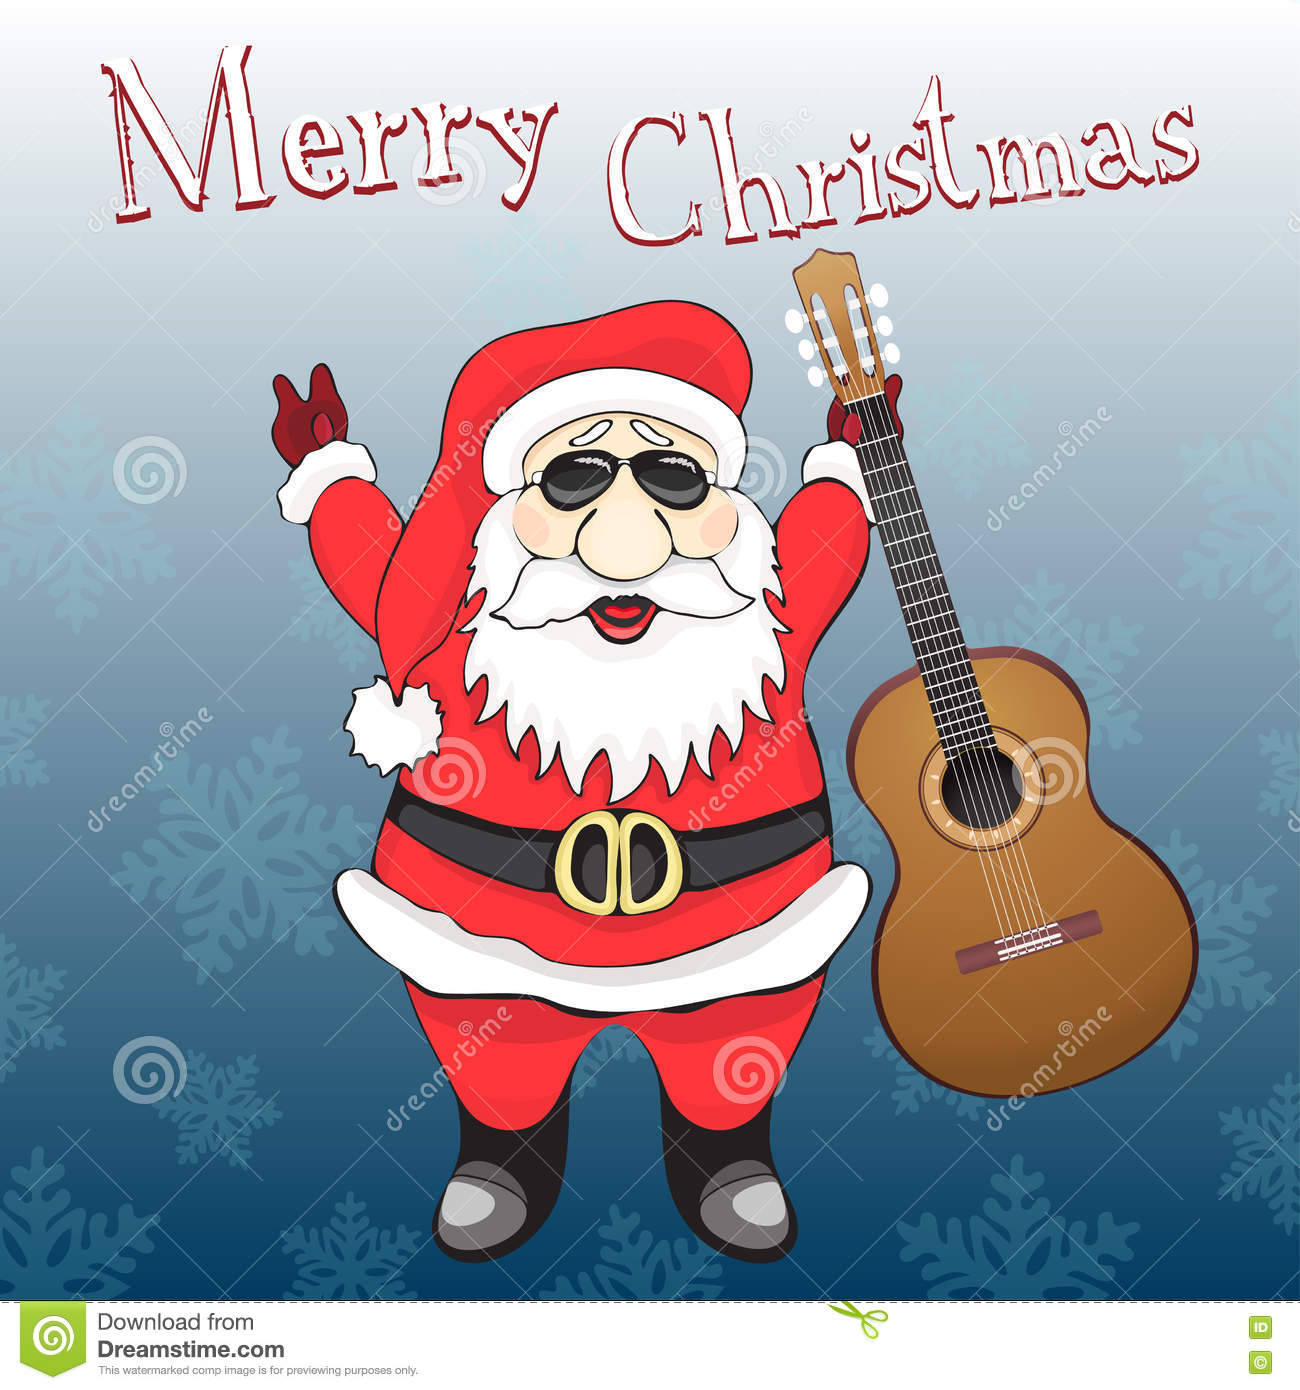 Merry Christmas Card Funny Rock And Roll Santa Claus In Sunglasses